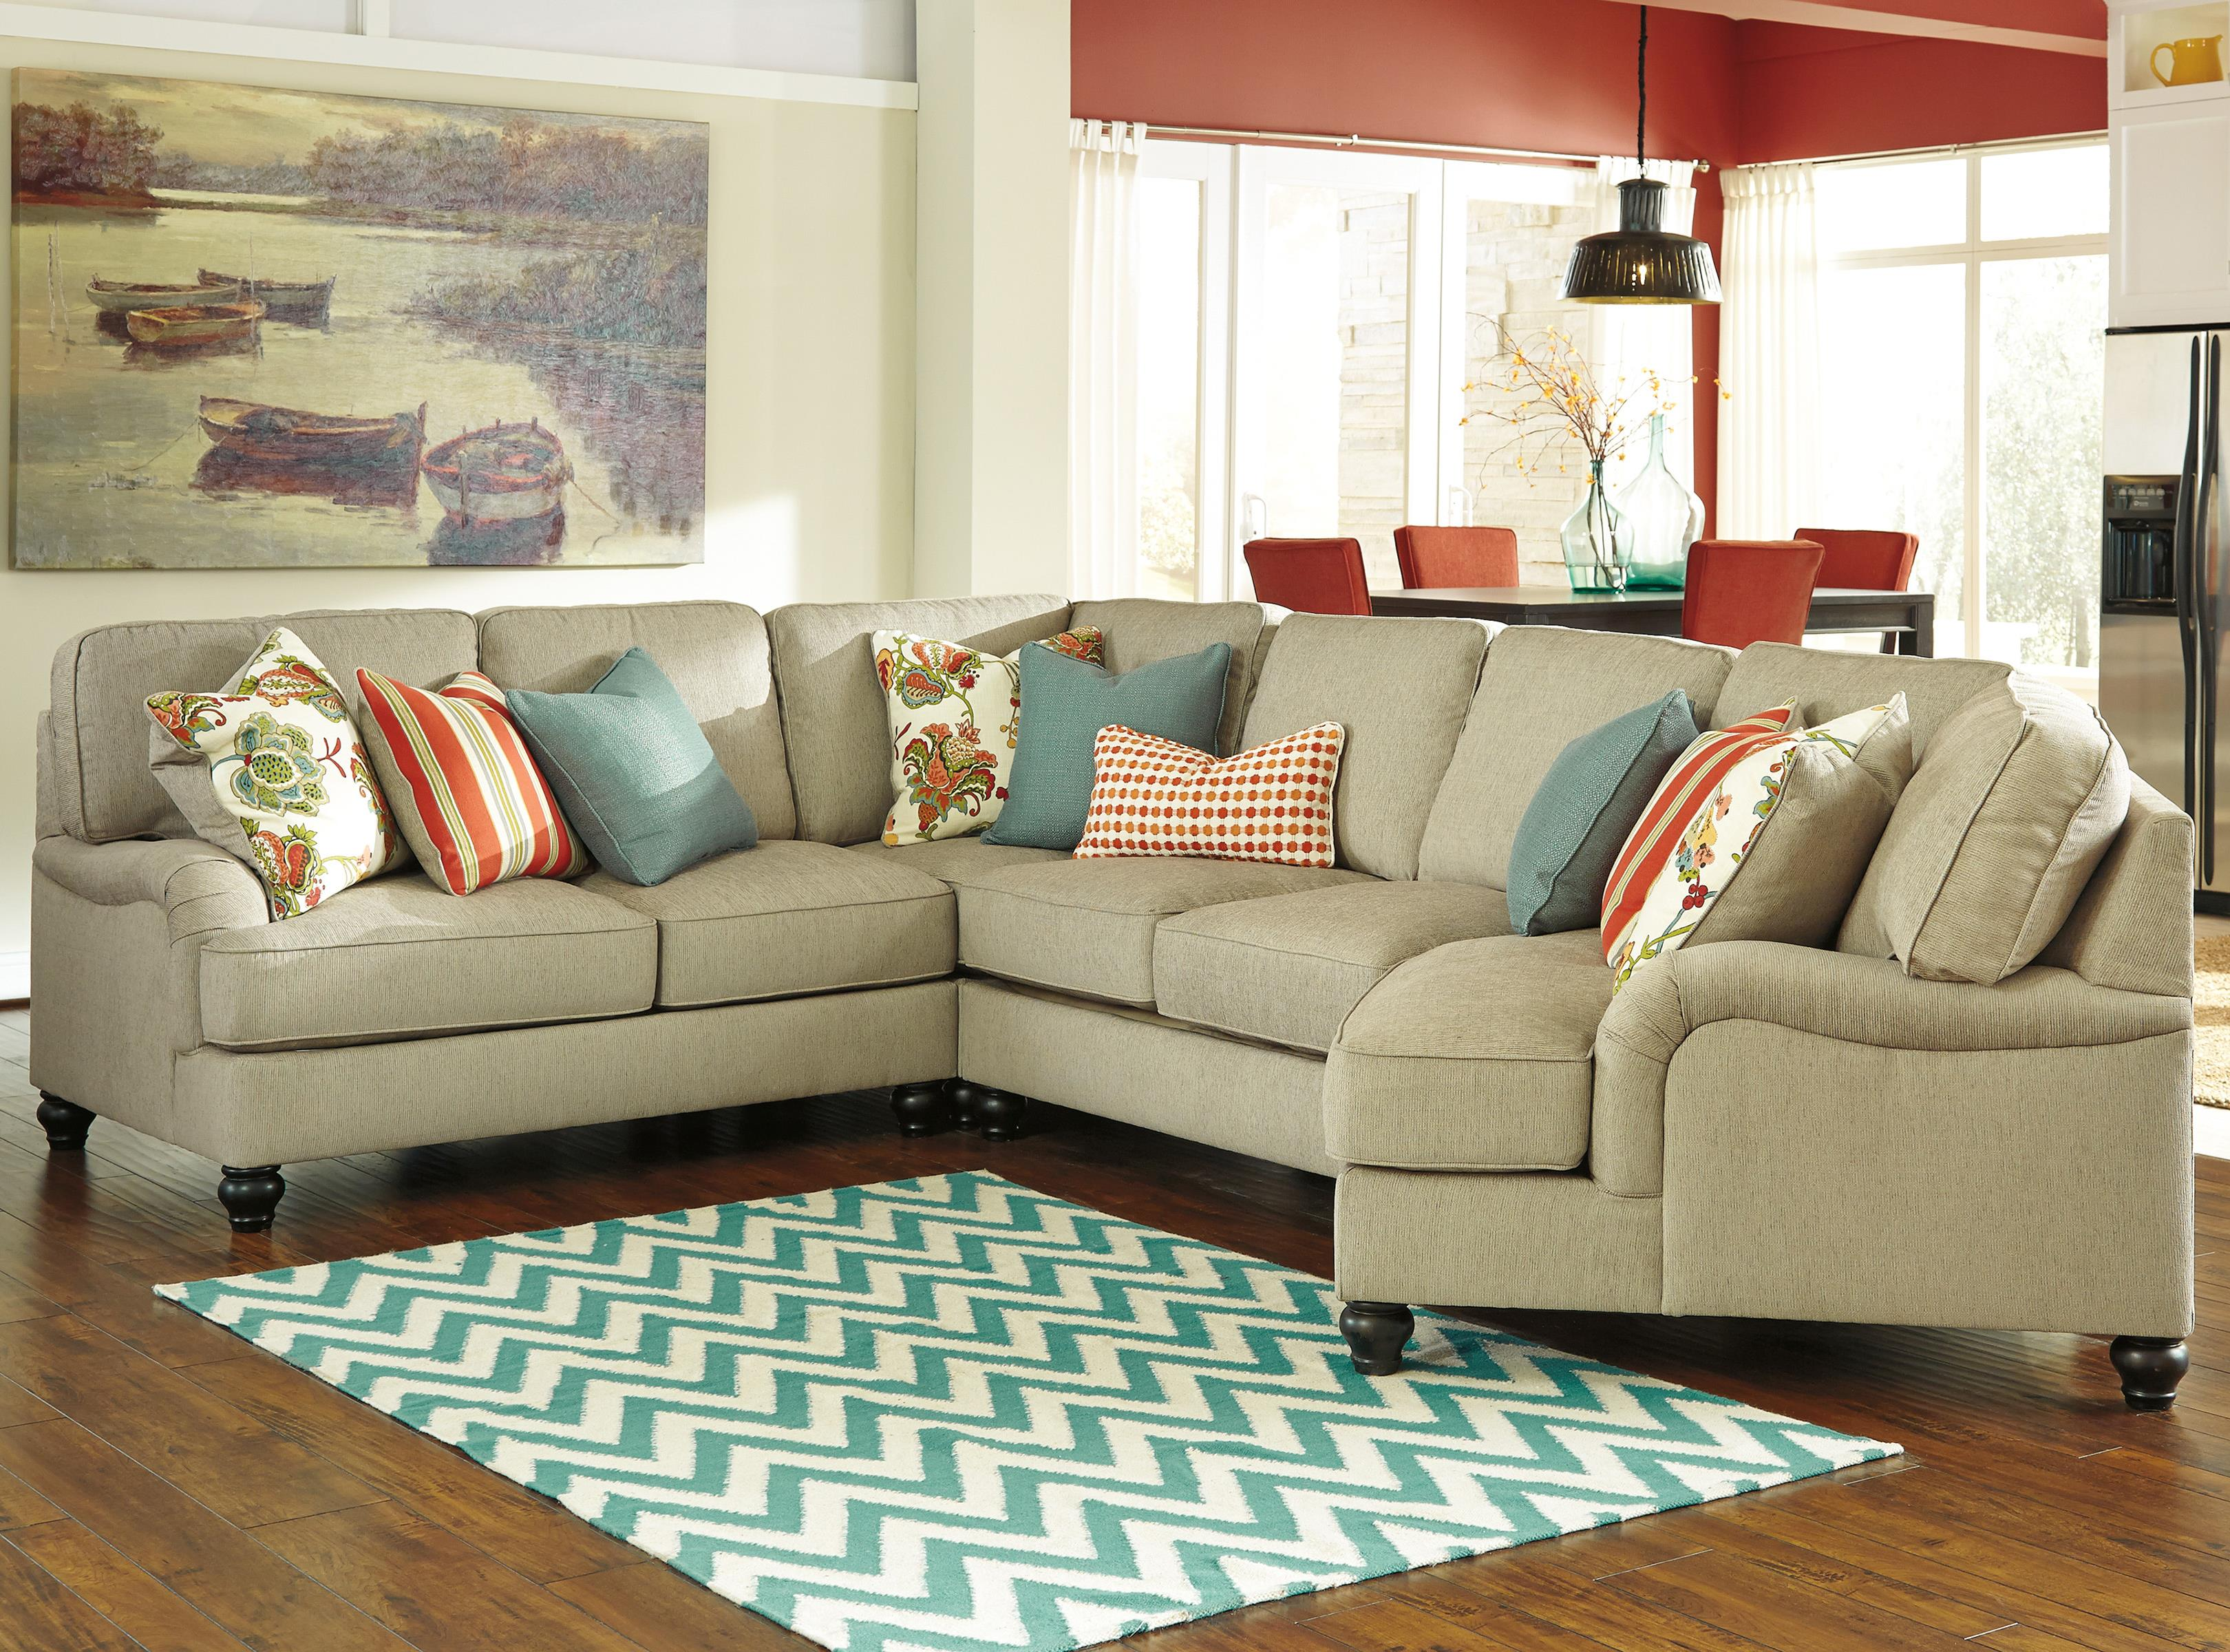 Benchcraft Kerridon 4-Piece Sectional with Right Cuddler - Item Number: 2630055+77+34+75